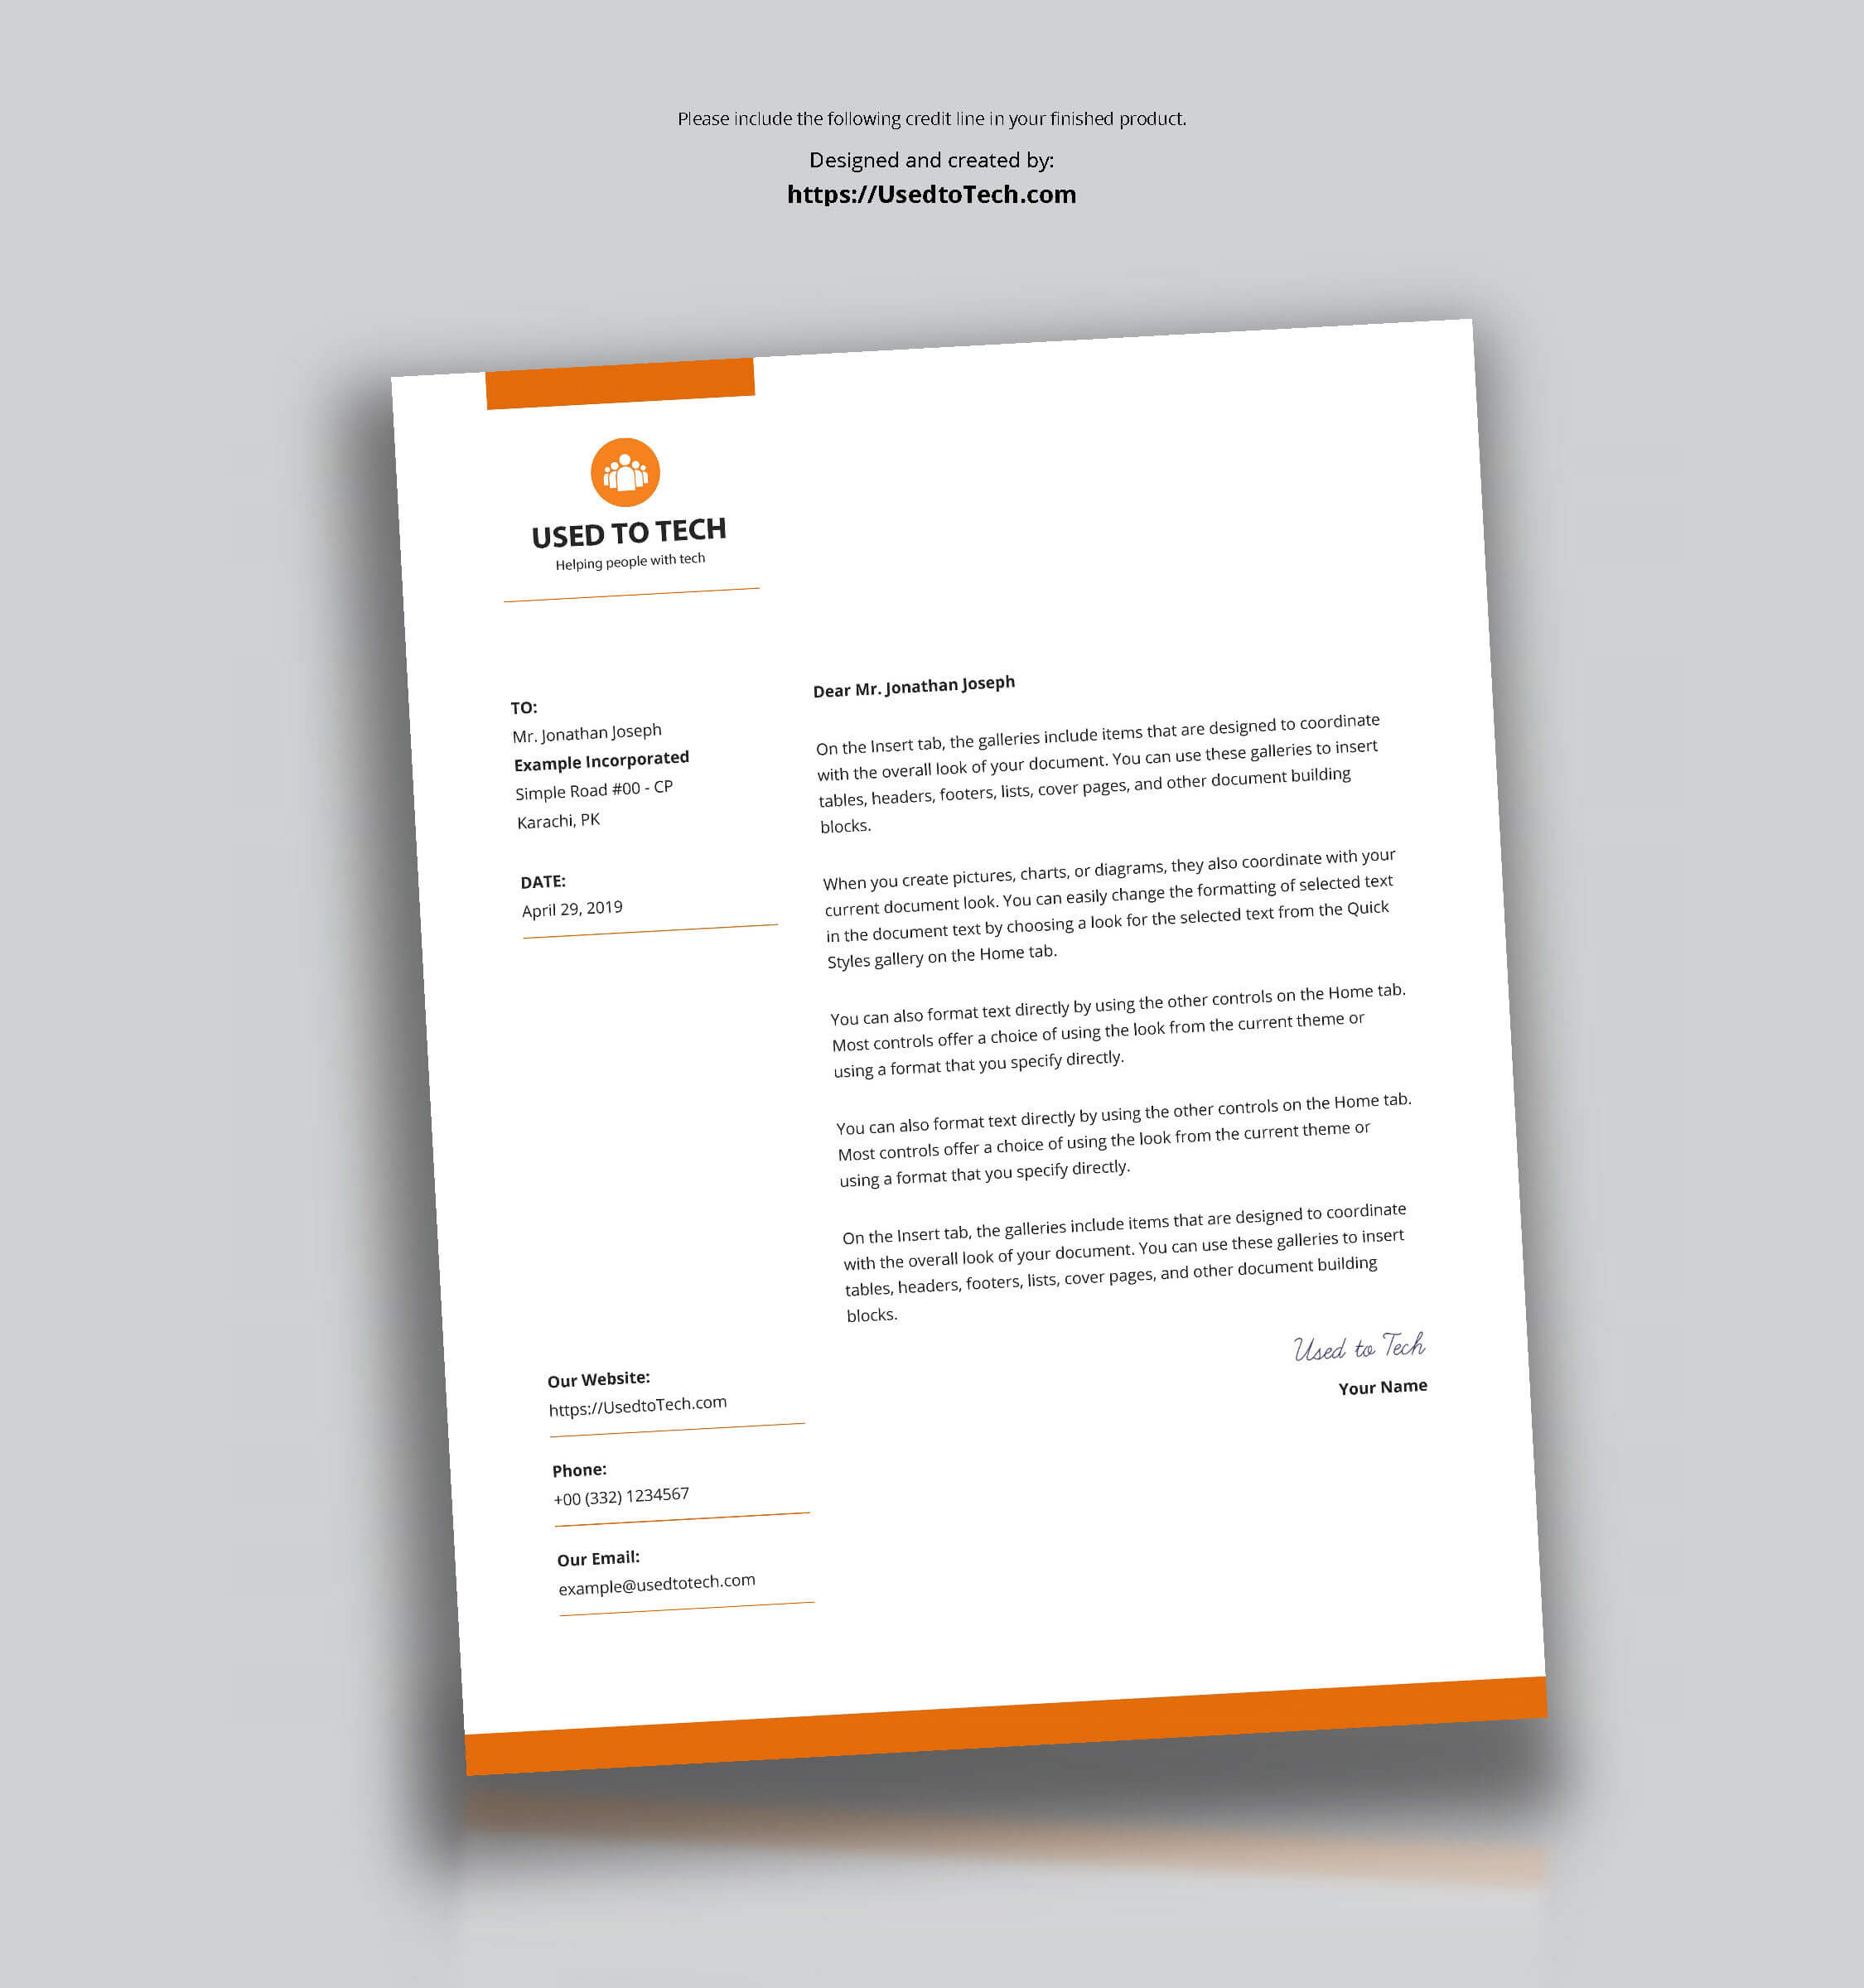 Modern Letterhead Template In Microsoft Word Free - Used To Tech With Regard To Free Letterhead Templates For Microsoft Word